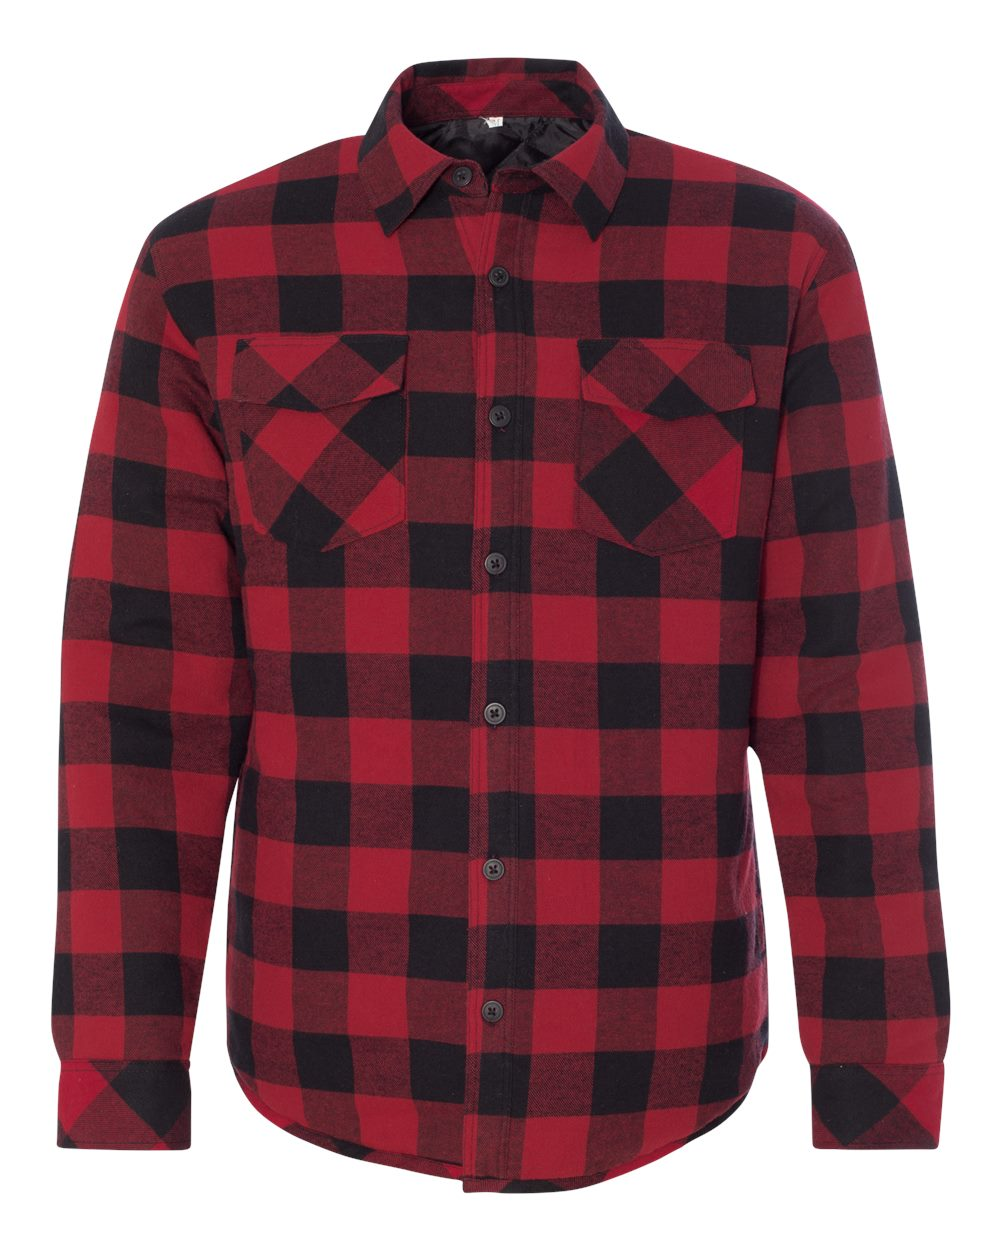 Burnside-Mens-Quilted-Flannel-Jacket-Shirt-8610-up-to-3XL thumbnail 9